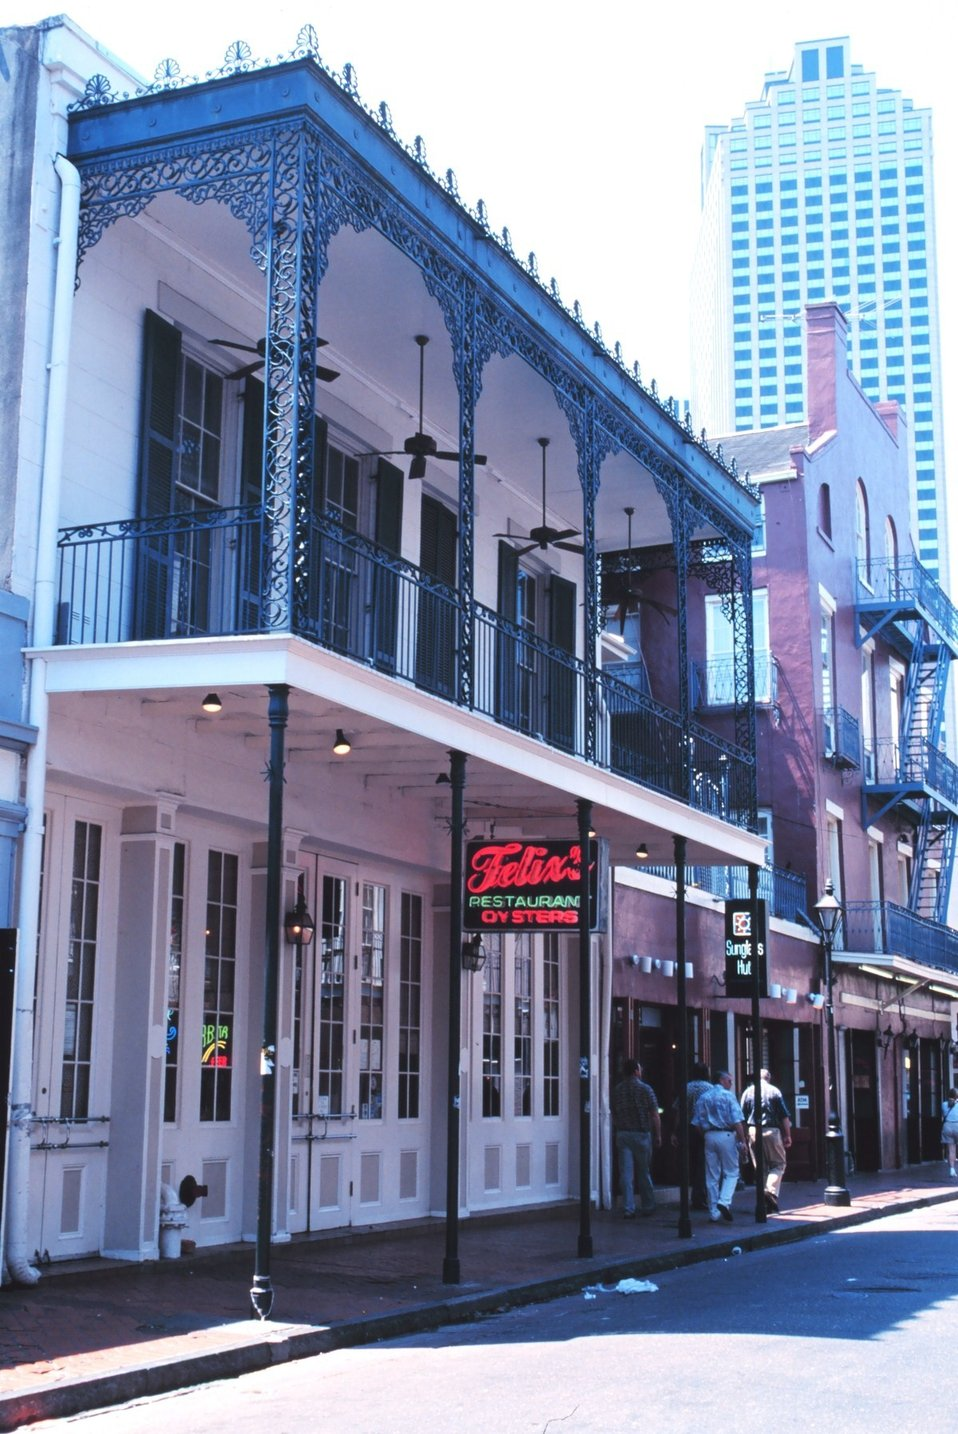 Felix's Restaurant, showing the old French decorative ironwork